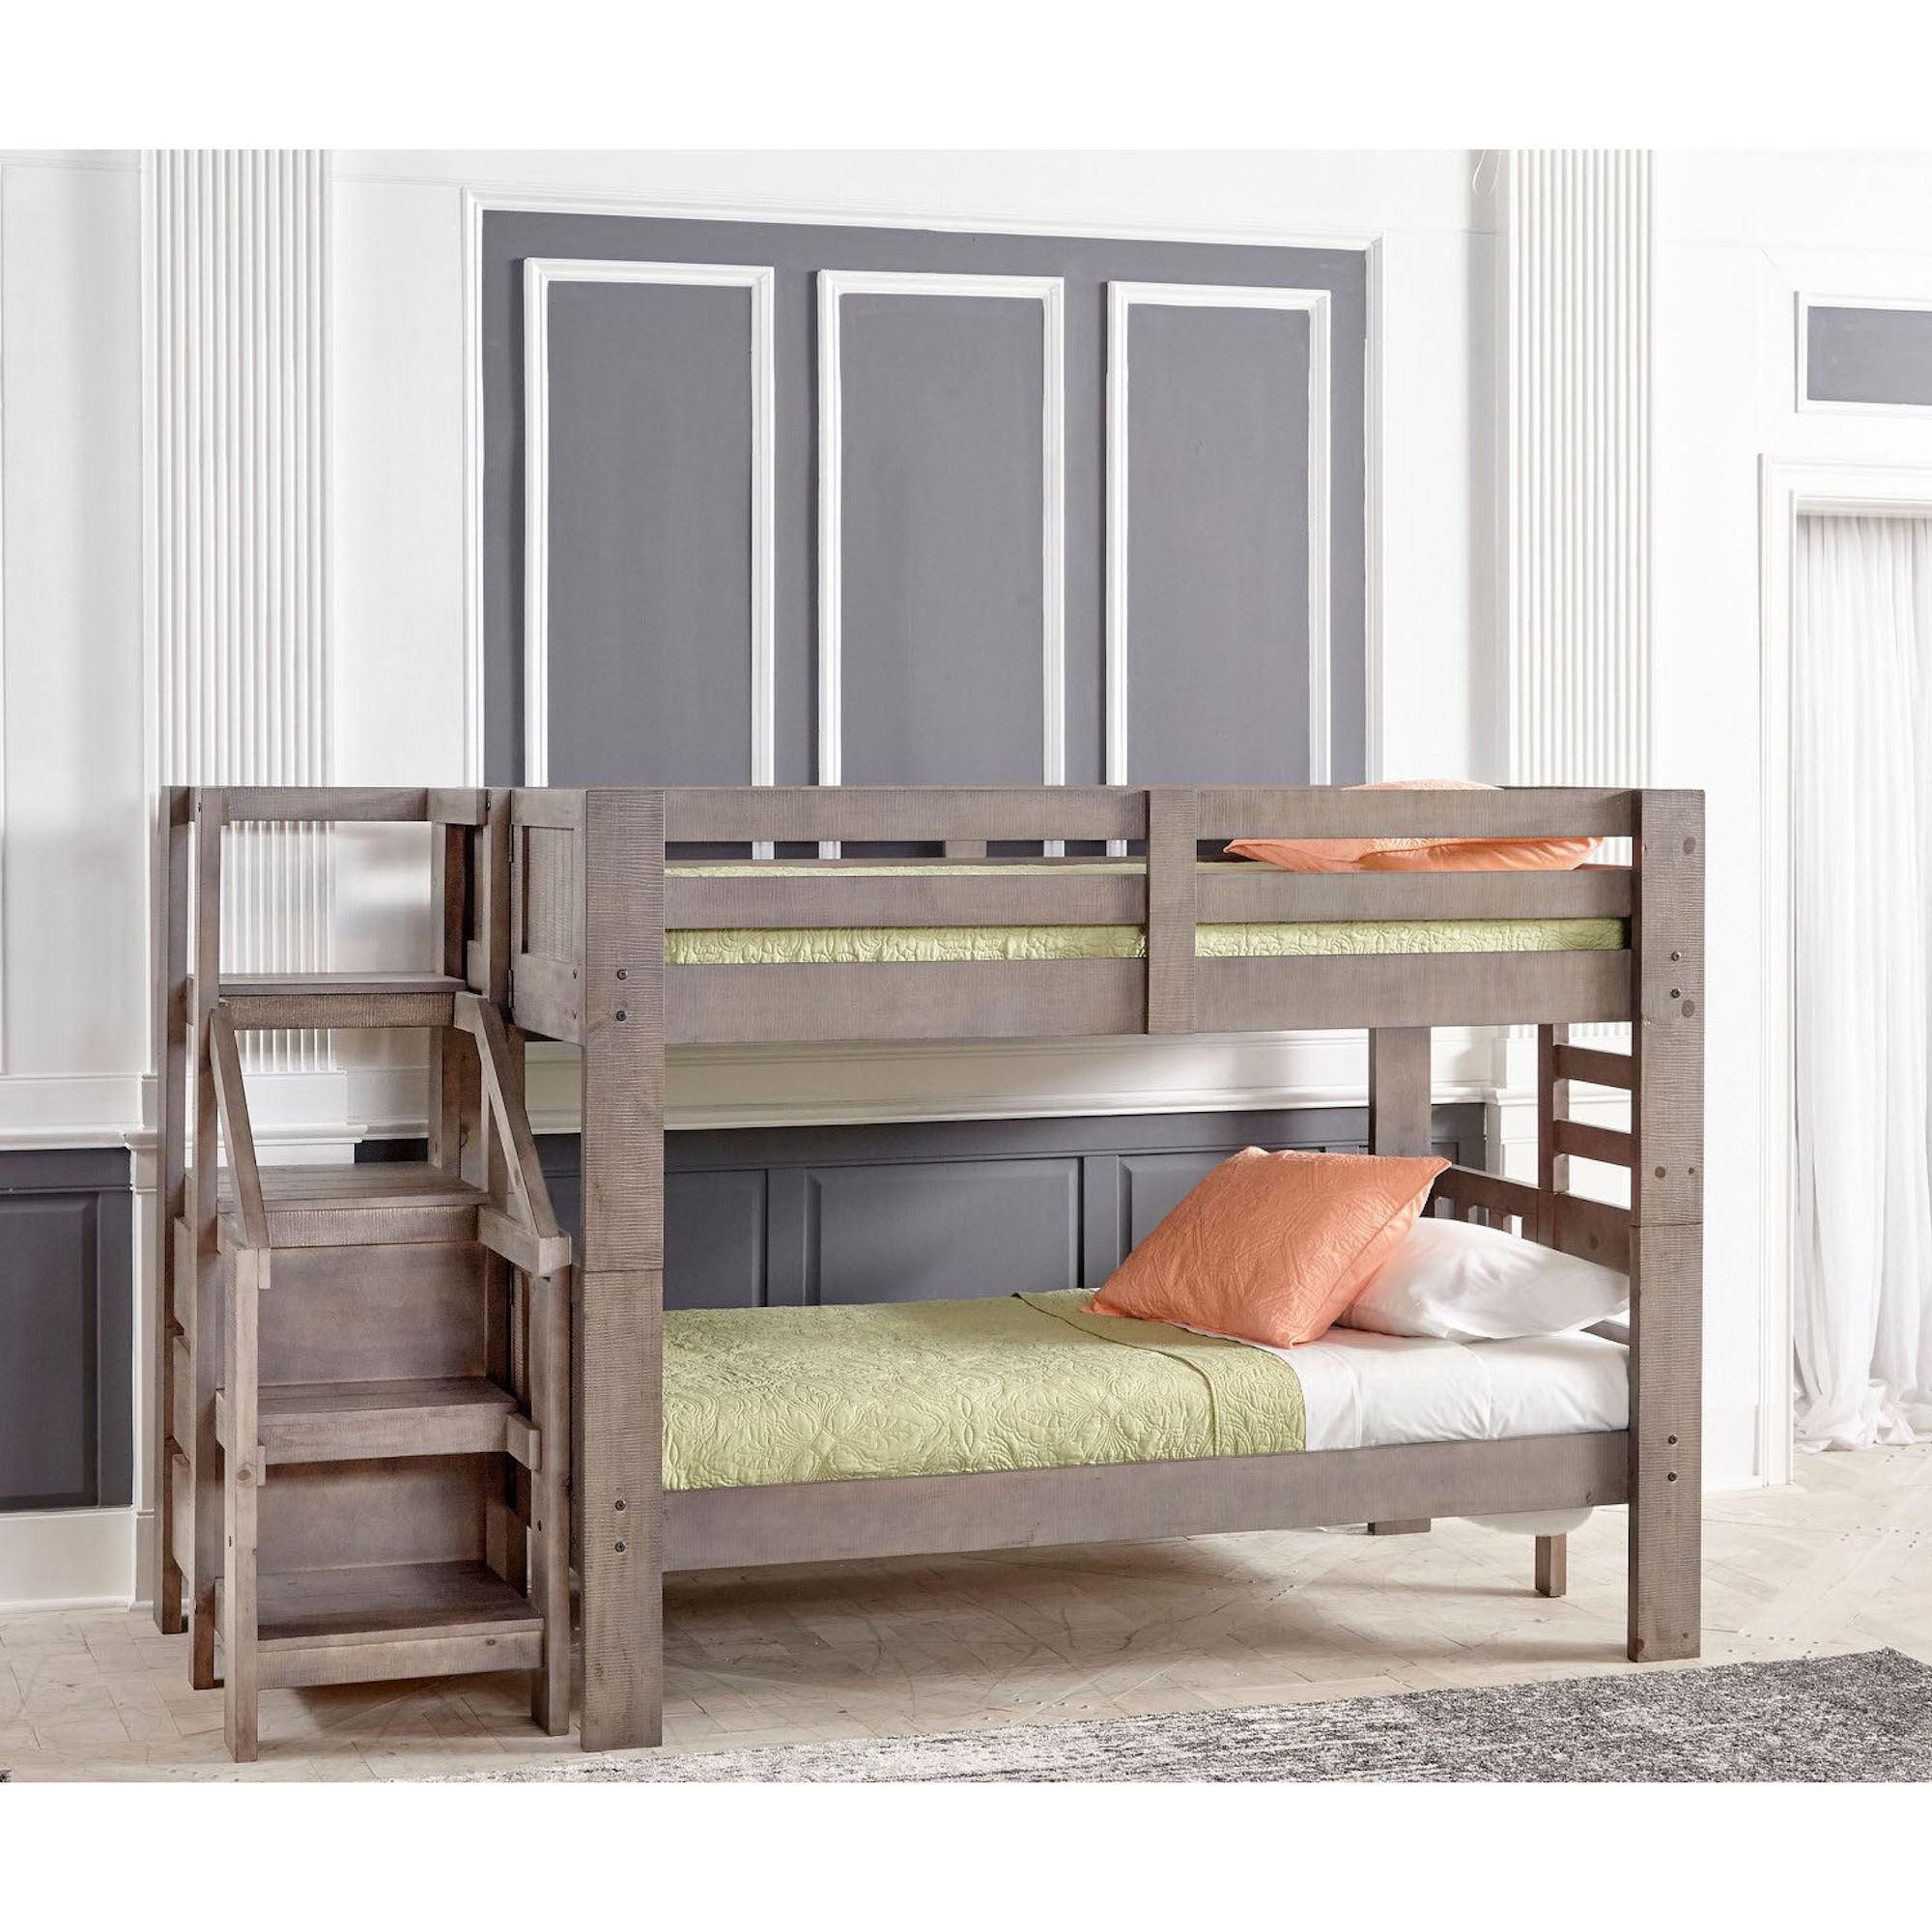 225 & 7-Piece Twin Bunk Bed with Staircase \u0026 Mattress Set